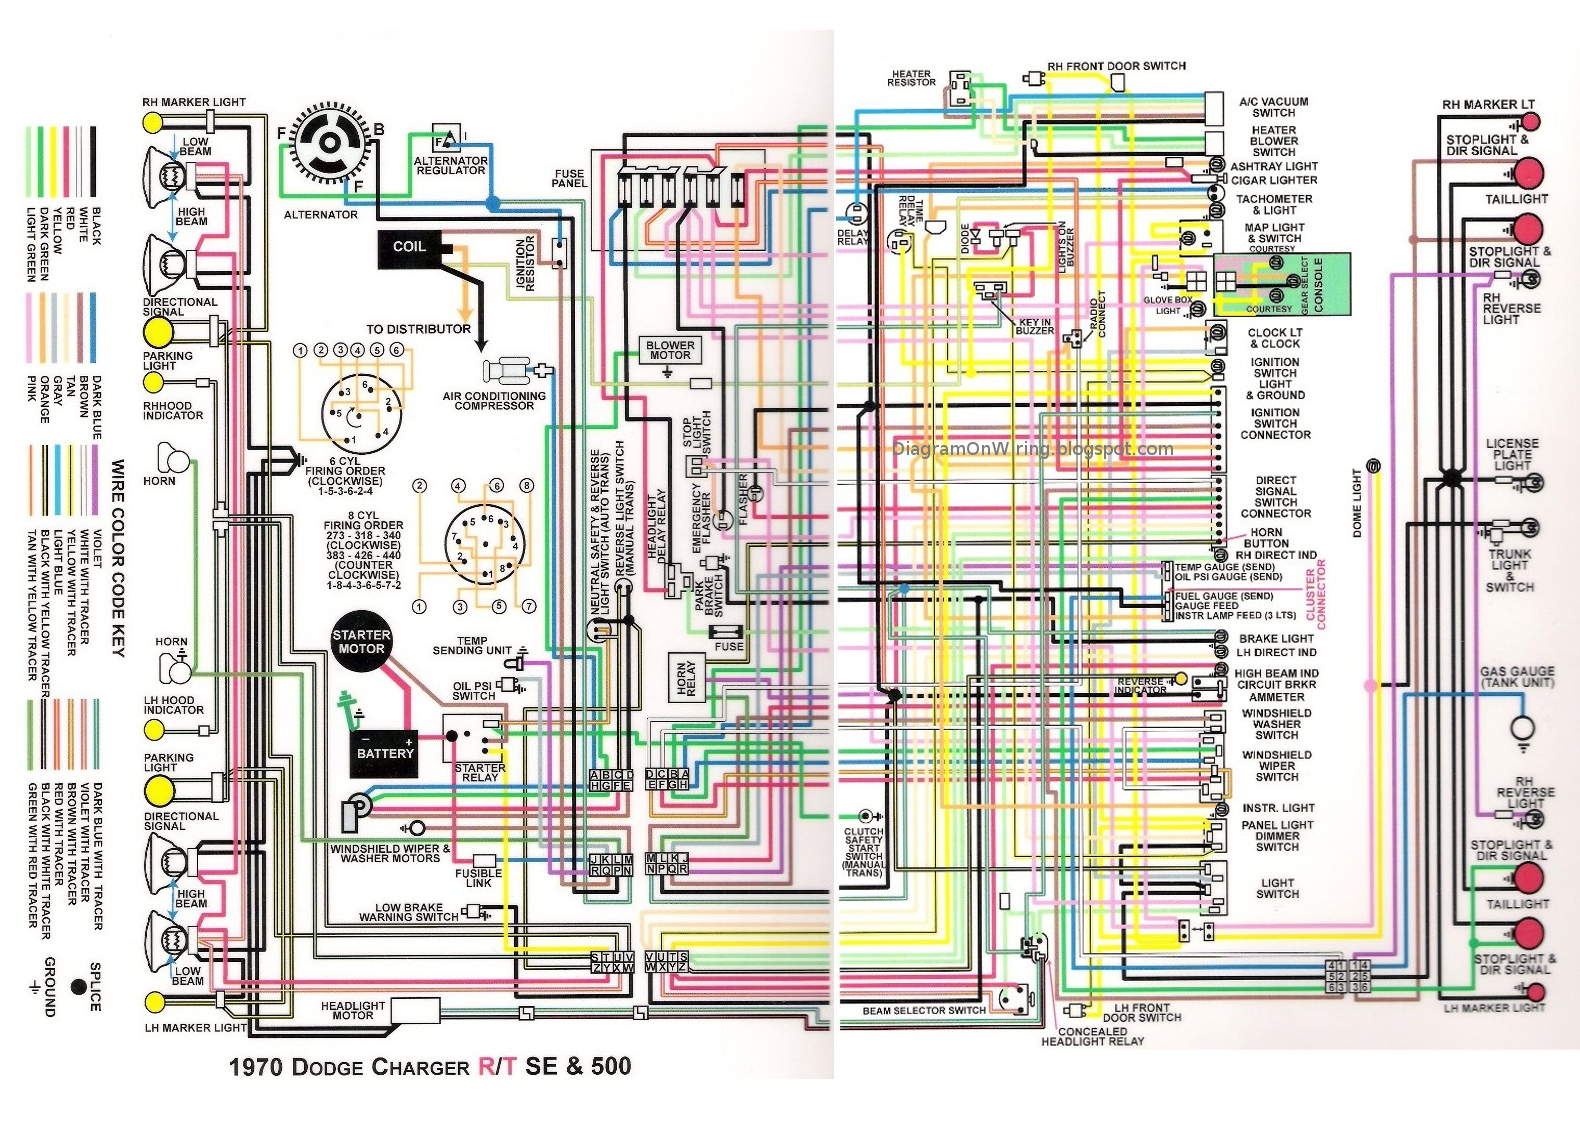 dodge ram 1500 wiring diagram with 1972 Dodge Dart Wiring Harness on 04 Dodge Ram Fuse Box likewise 3j6o6 Wire Auto Lock Tailgate Lock Door Locks So together with Stereo Wiring Diagram For 2006 Dodge Ram 2500 besides Dodge Dakota Wiring Diagrams also Dodge Starter Diagram.